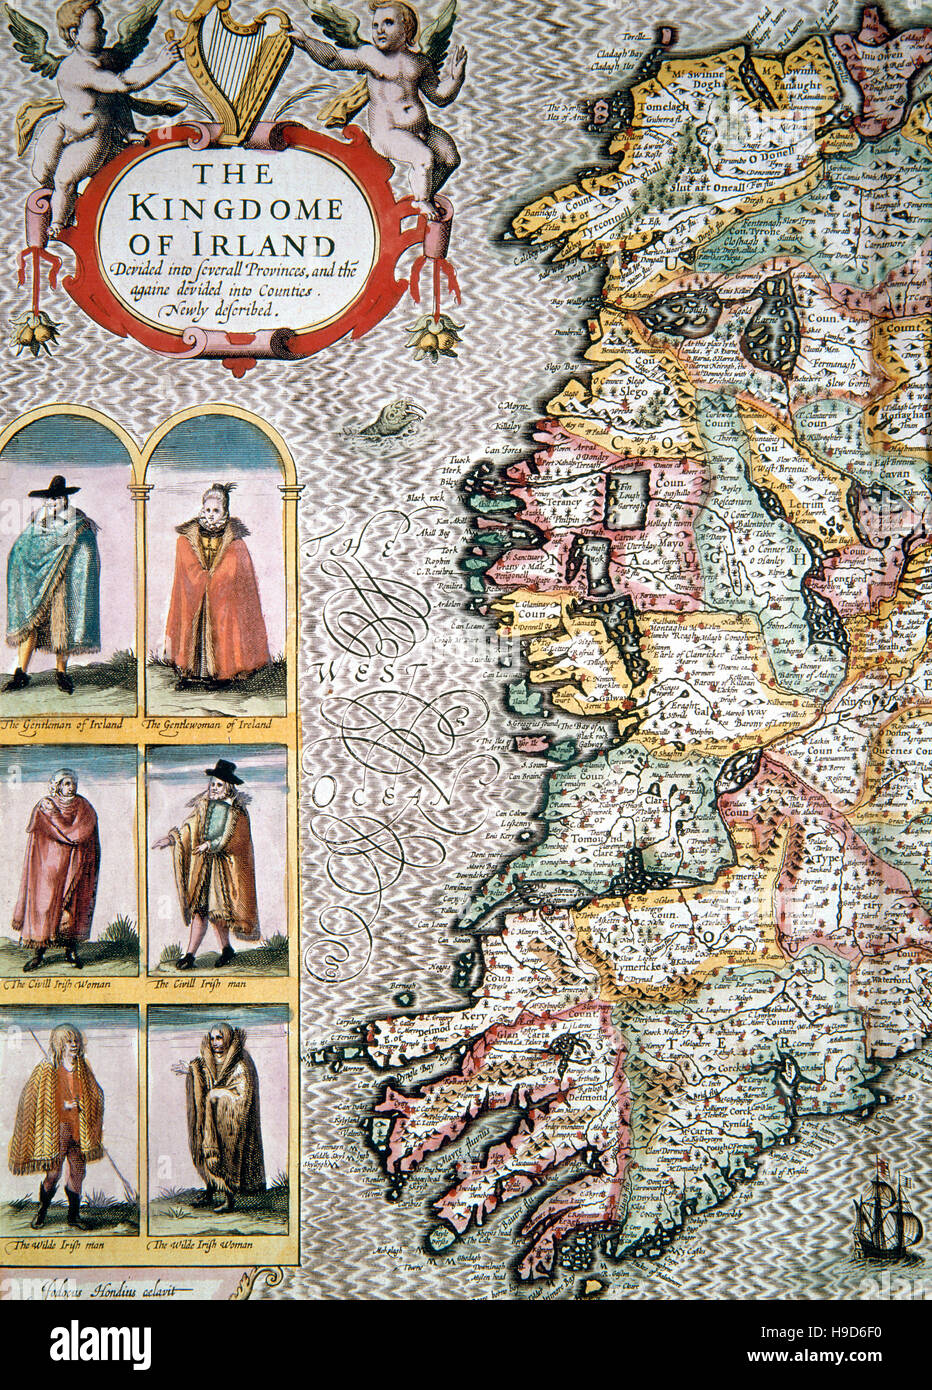 Jodocus Hondius ( 1563 - 1612 ) Map , the Kingdom of Ireland , 1616 on republic of china map, democratic republic of the congo map, southern ireland map, kingdom of ireland flag, union of soviet socialist republics map, isle of man map, duchy of milan map, republic of ireland map, provinces of ireland map, grand duchy of tuscany map, confederate states of america map,